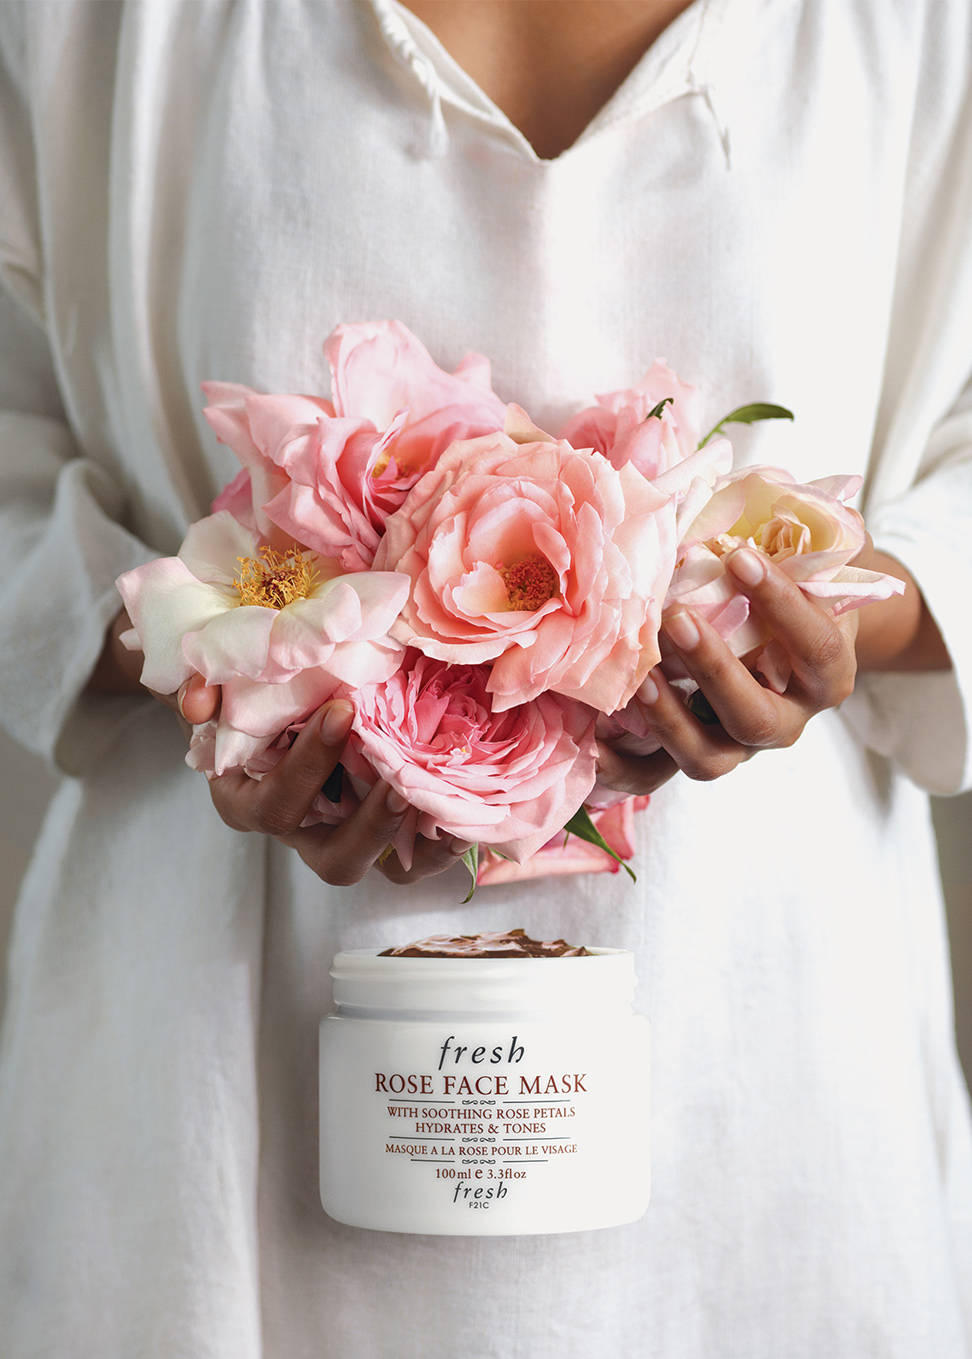 Free 28-Piece Gift ($130 Value) with $125 Fresh Purchase @ Nordstrom